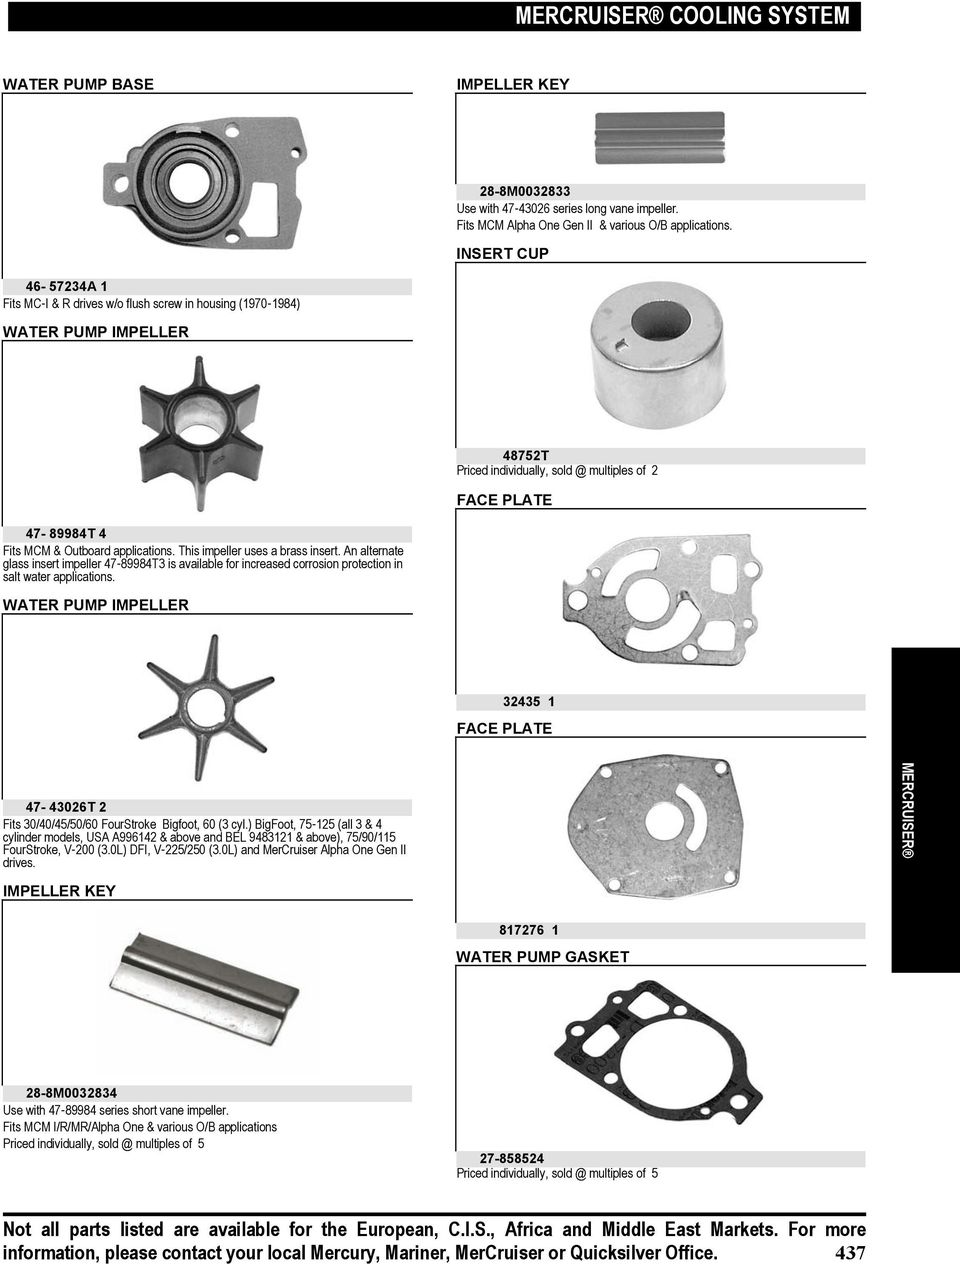 Mercruiser Cooling System Pdf 1999 Ford 4 6 Engine Diagram 204 Yr Applications This Impeller Uses A Brass Insert An Alternate Glass 47 89984t3 9 Water Pump